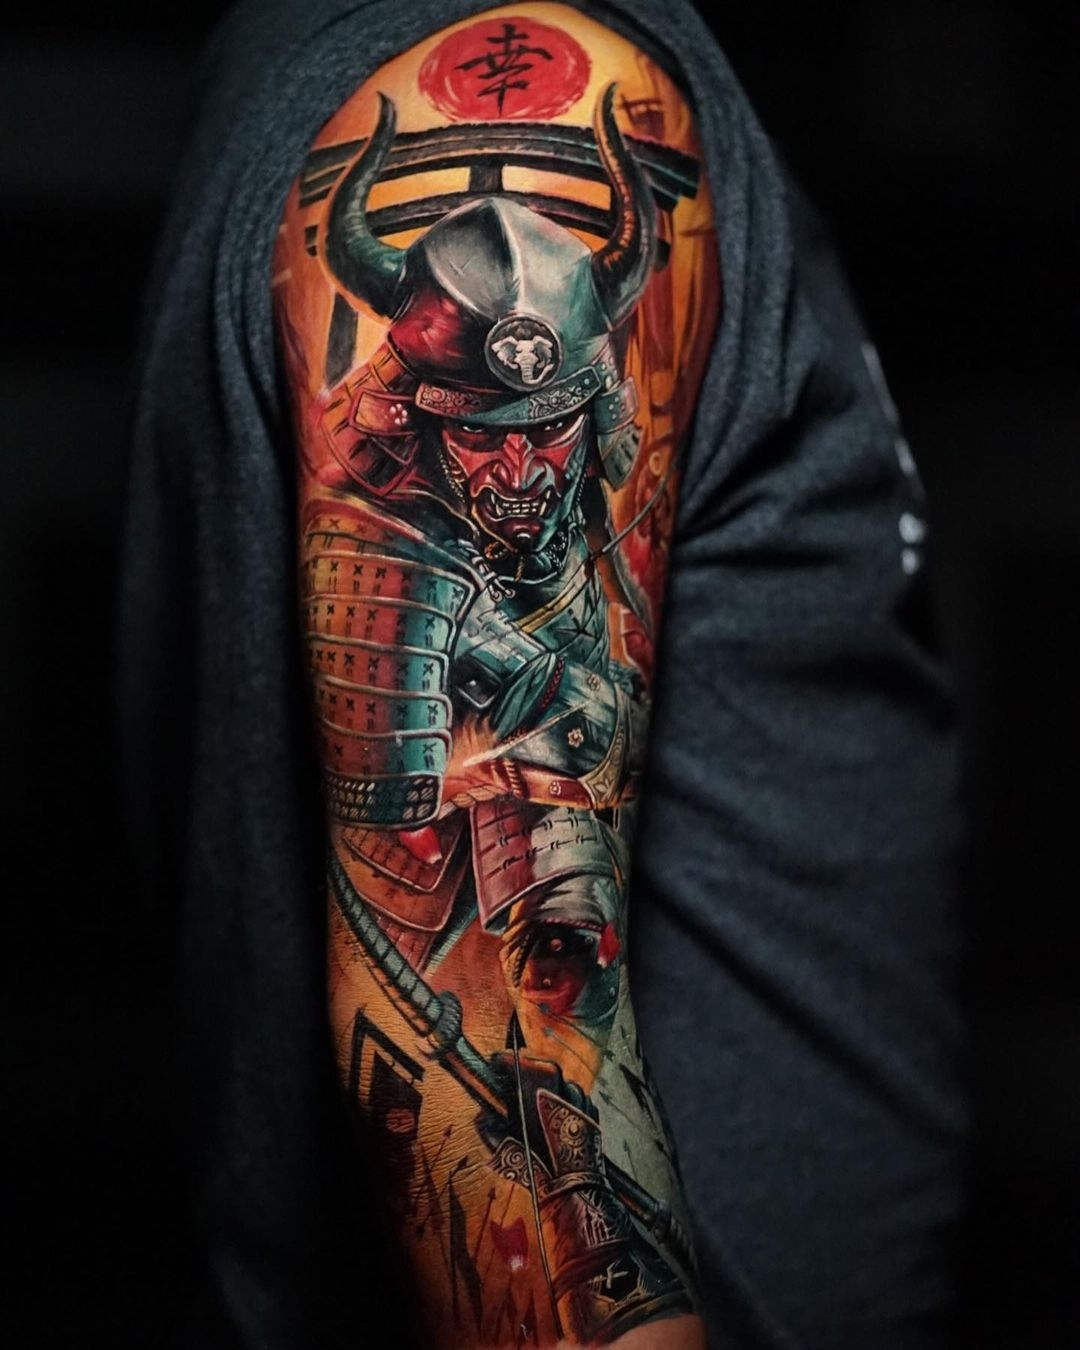 Color sketch of tattoo in Japanese style - samurai